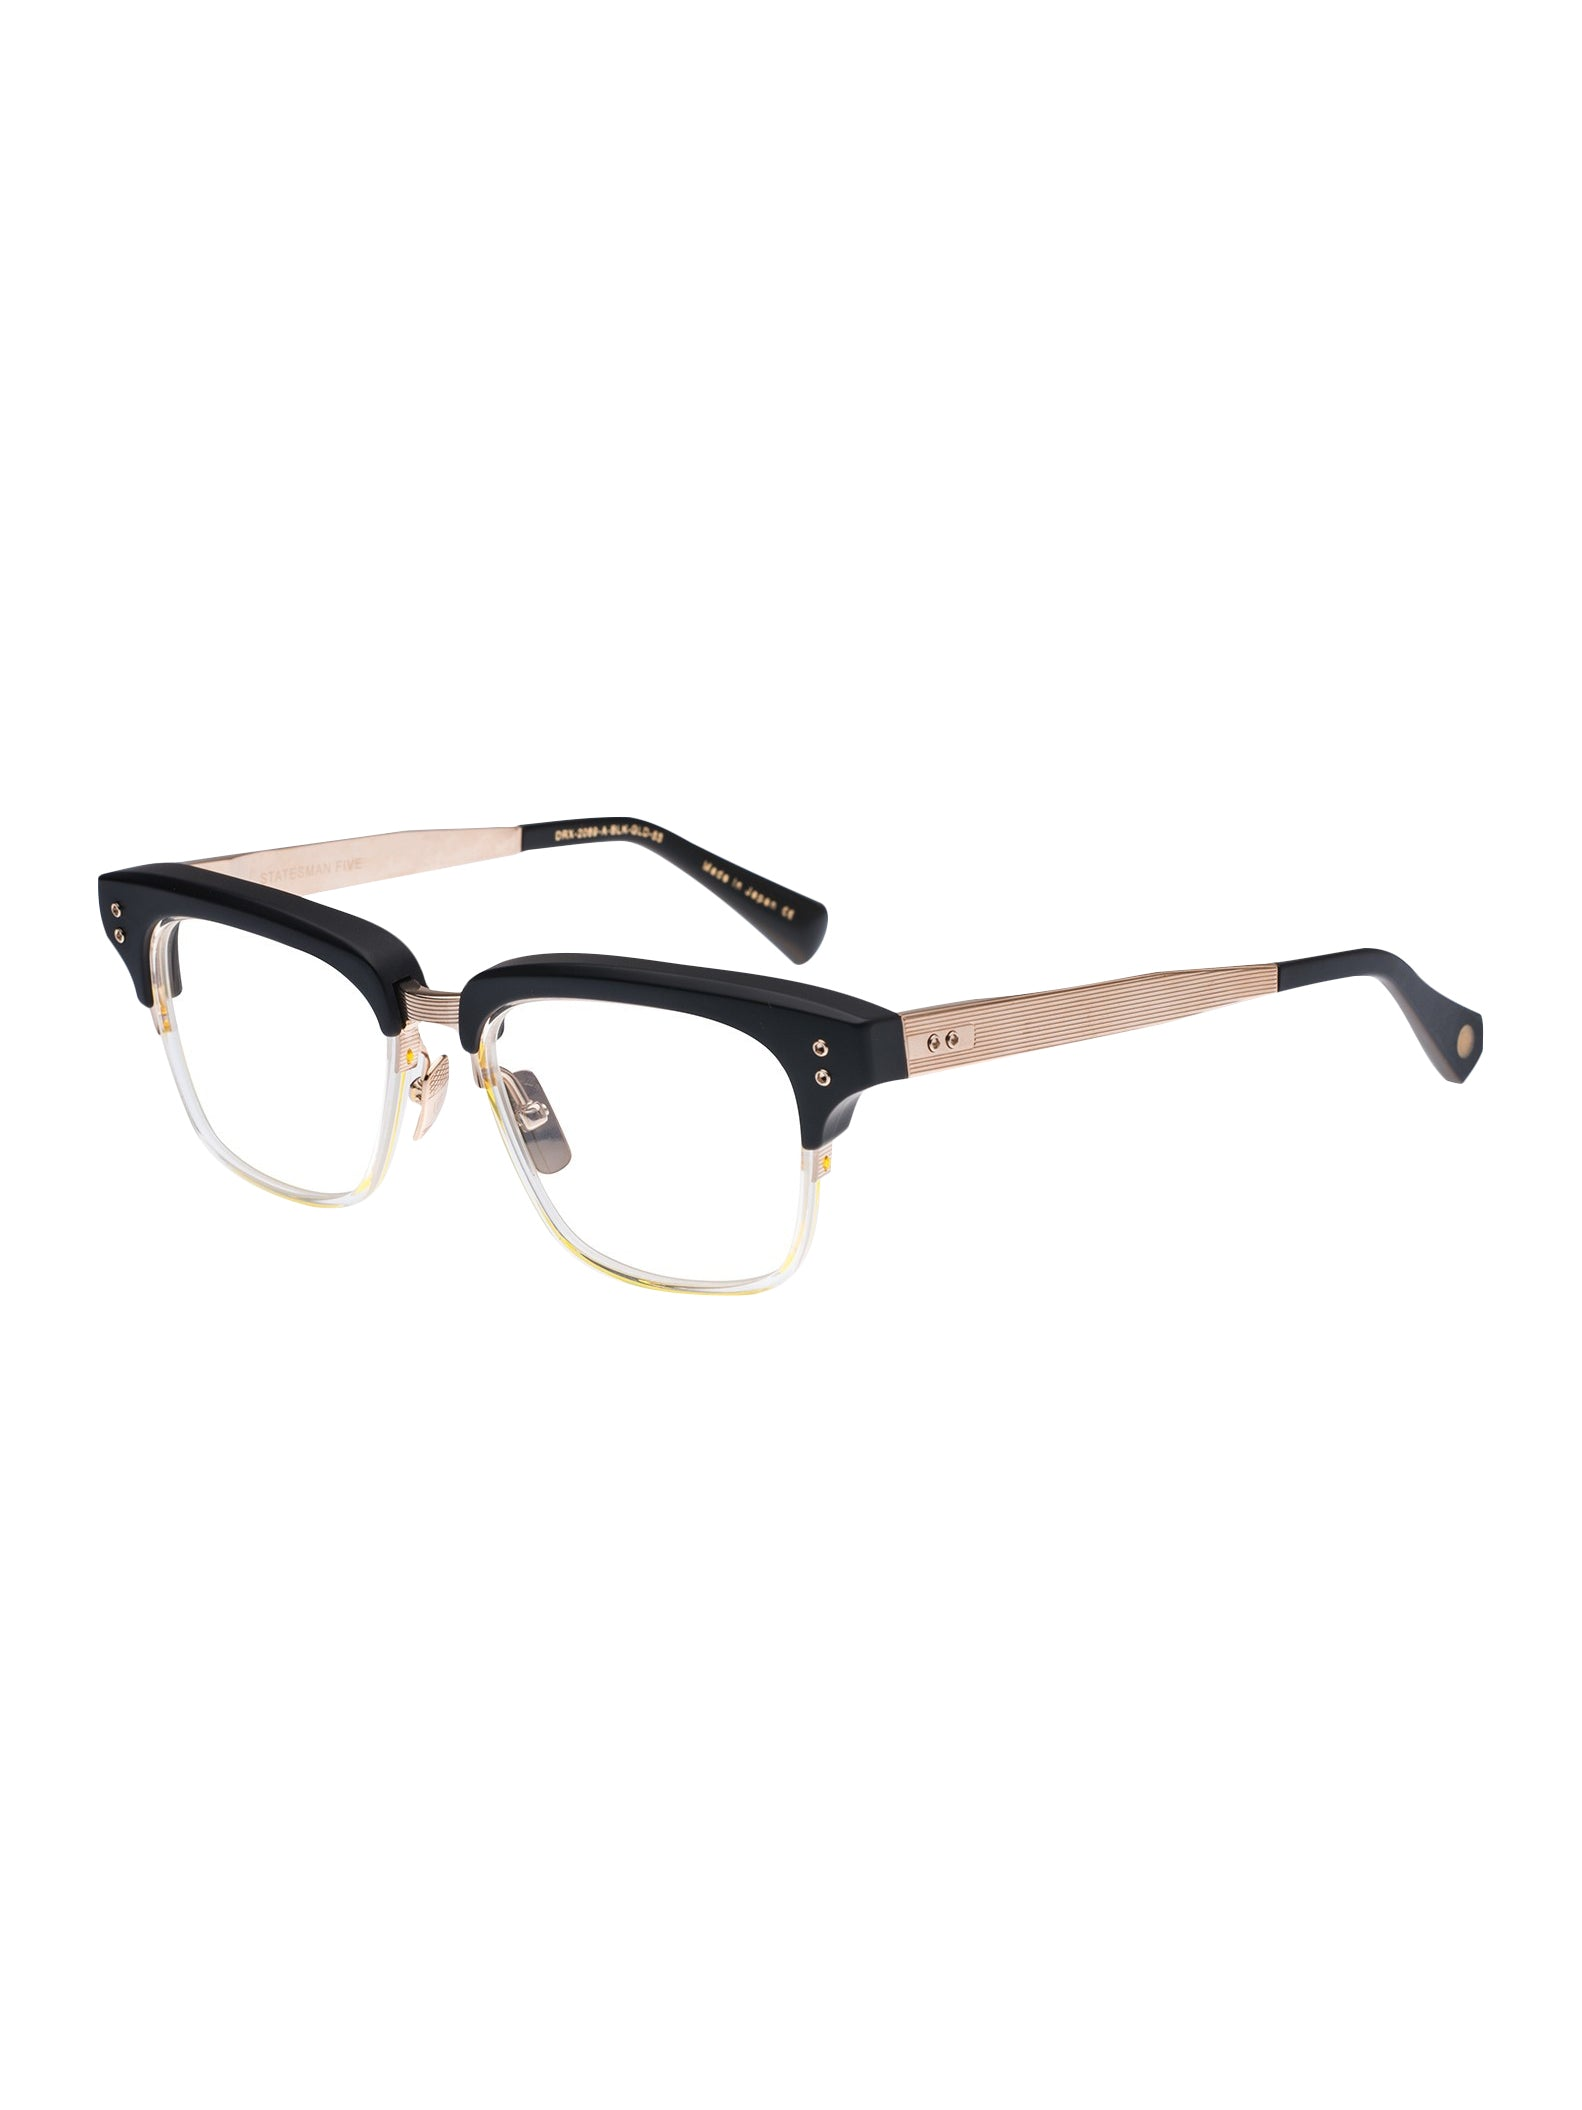 5cc079249b1 Dita Statesman Five DRX 2089 A Glasses